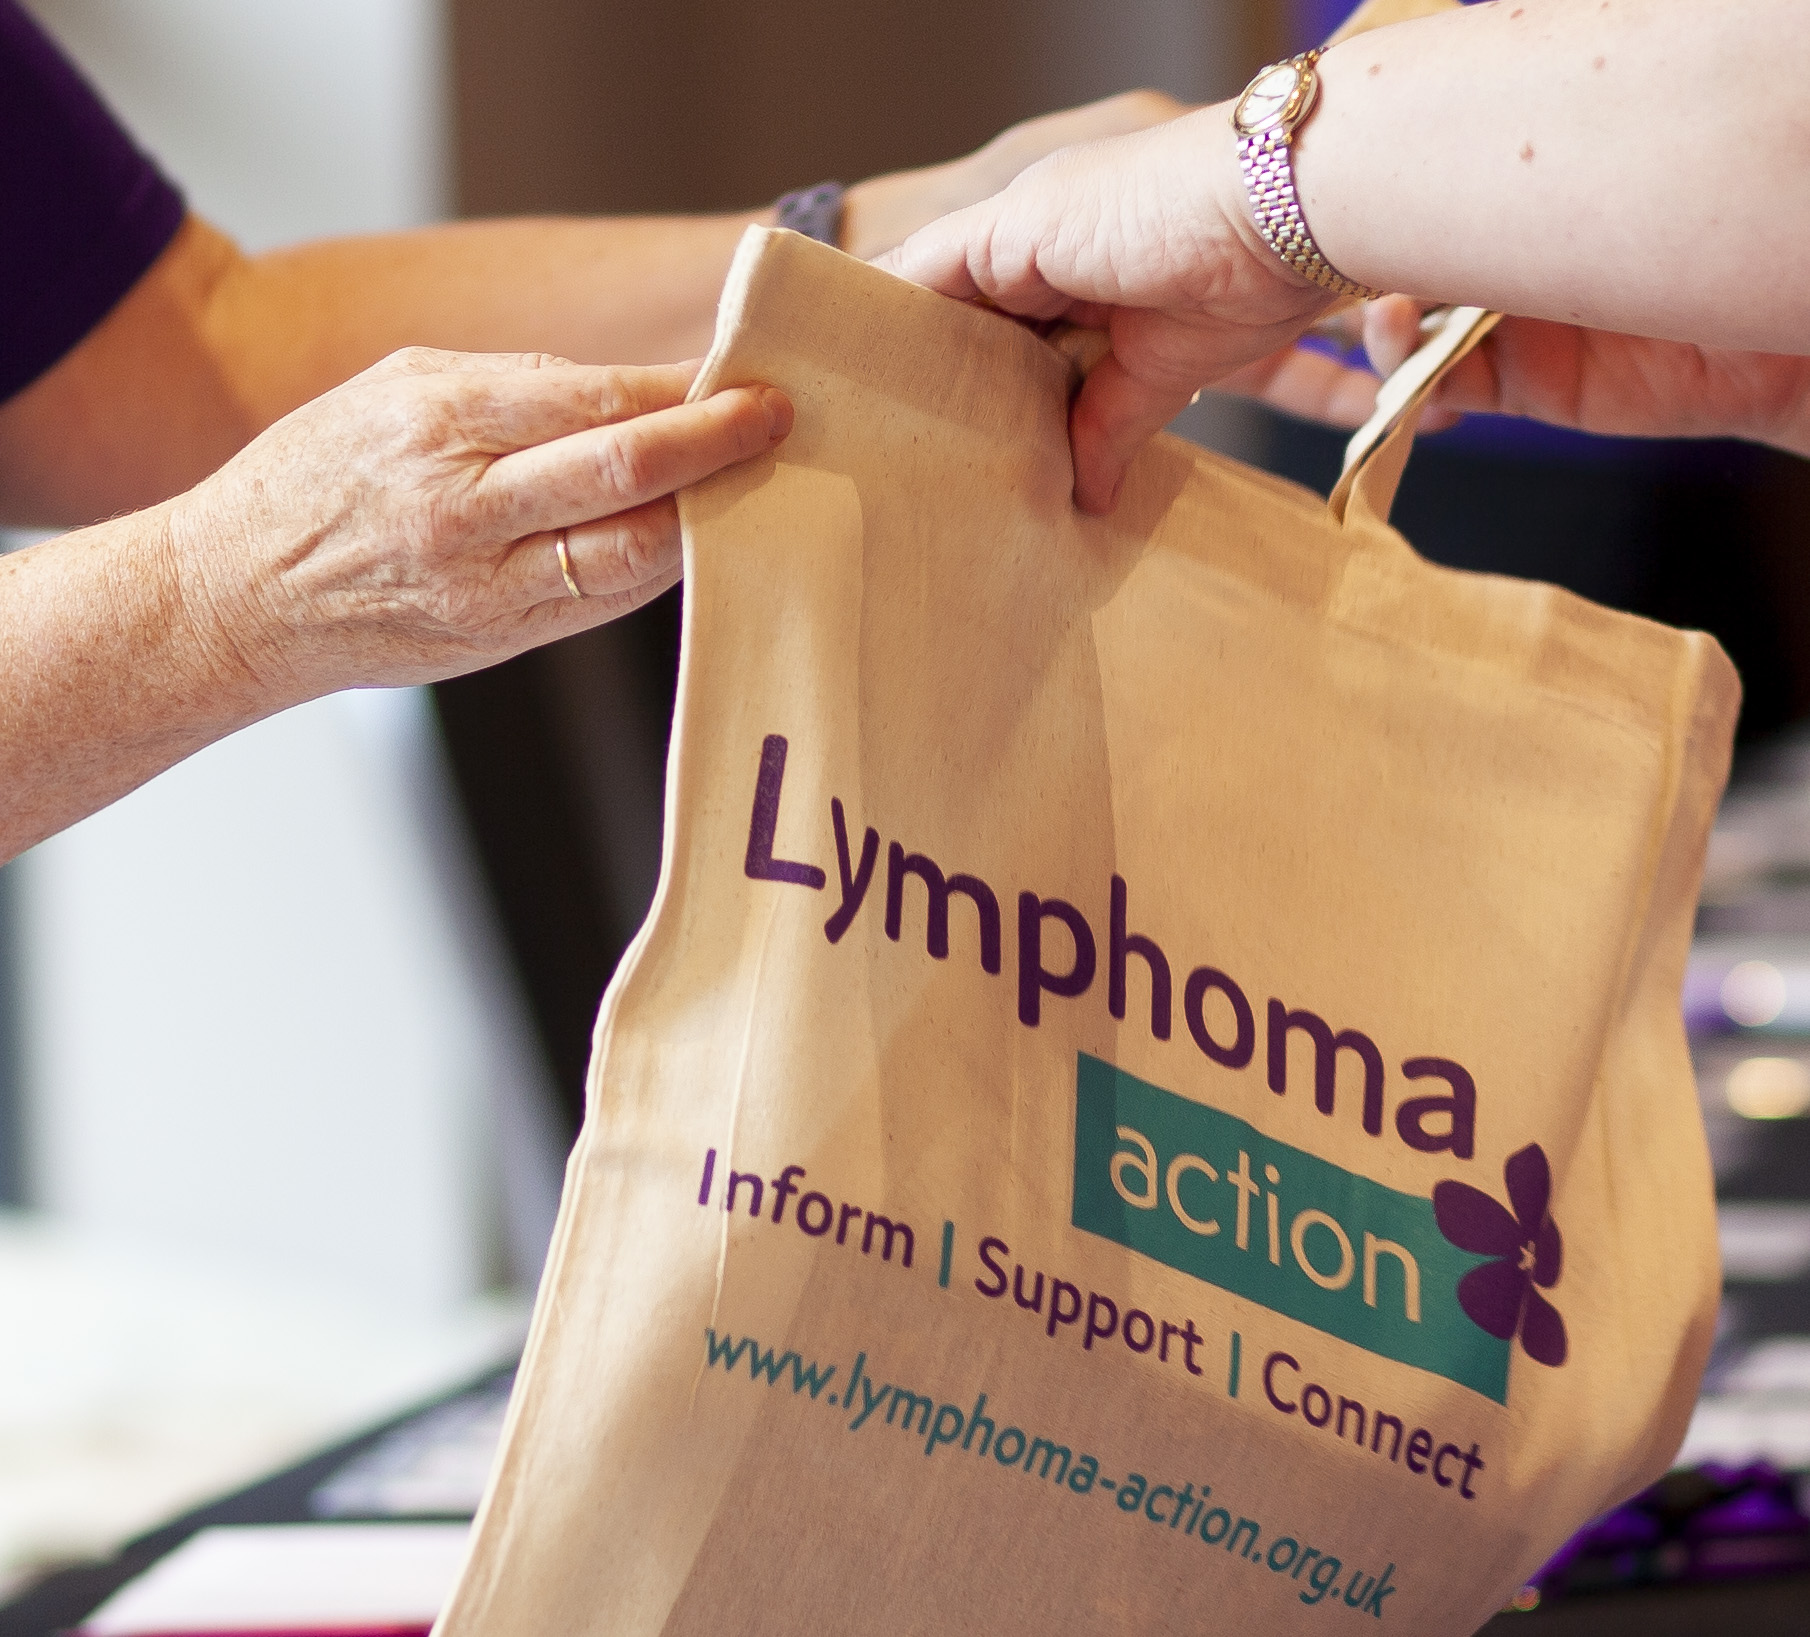 Lymphoma Action Conference